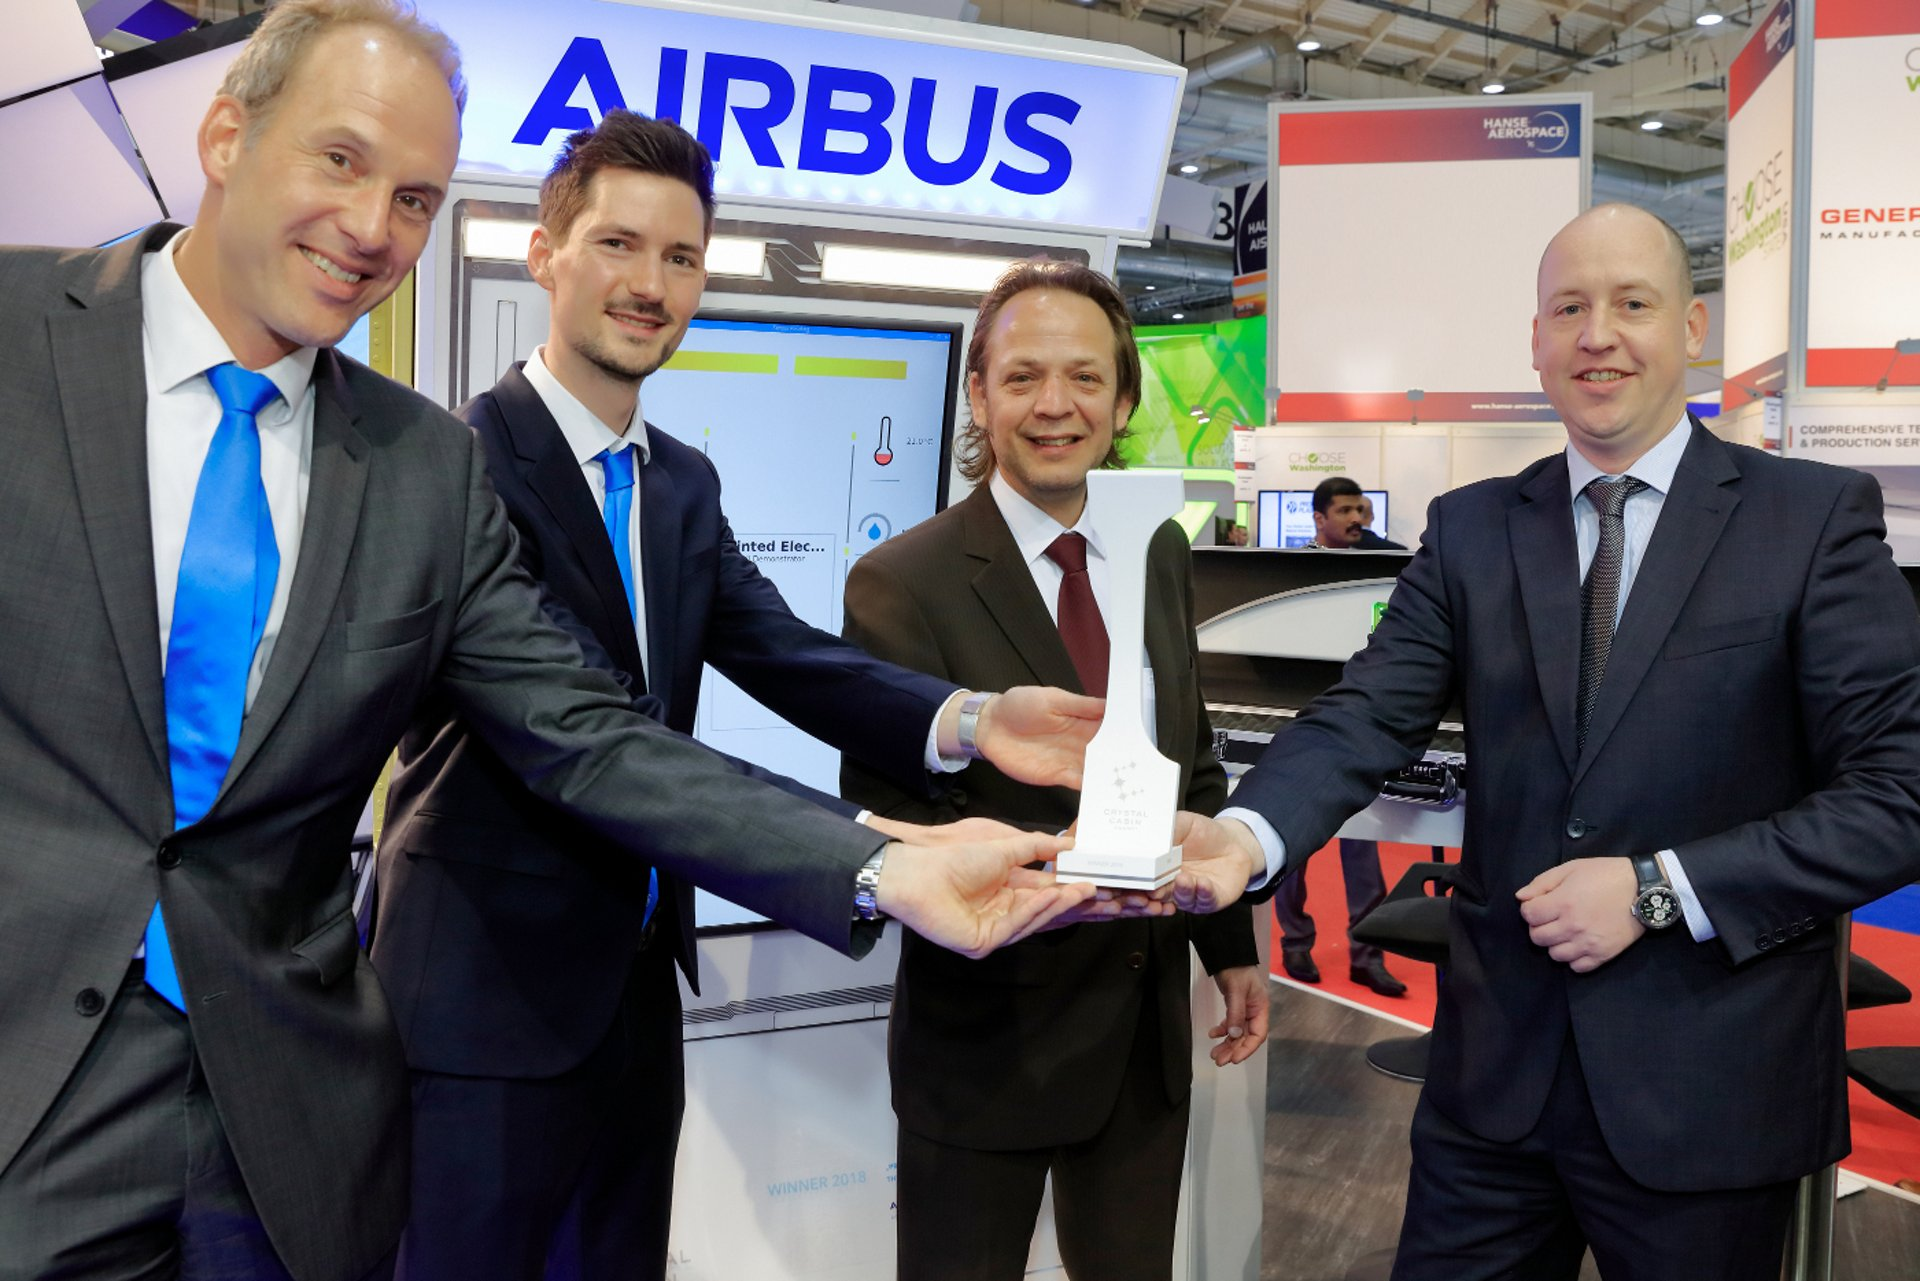 Airbus, in cooperation with Altran, has won the 2018 Crystal Cabin Award in the Material & Components category for its work on printed electrics – a new digital technology that uses printed conductive inks that could replace current electrical harnesses in an aircraft, reducing both weight and manufacturing costs